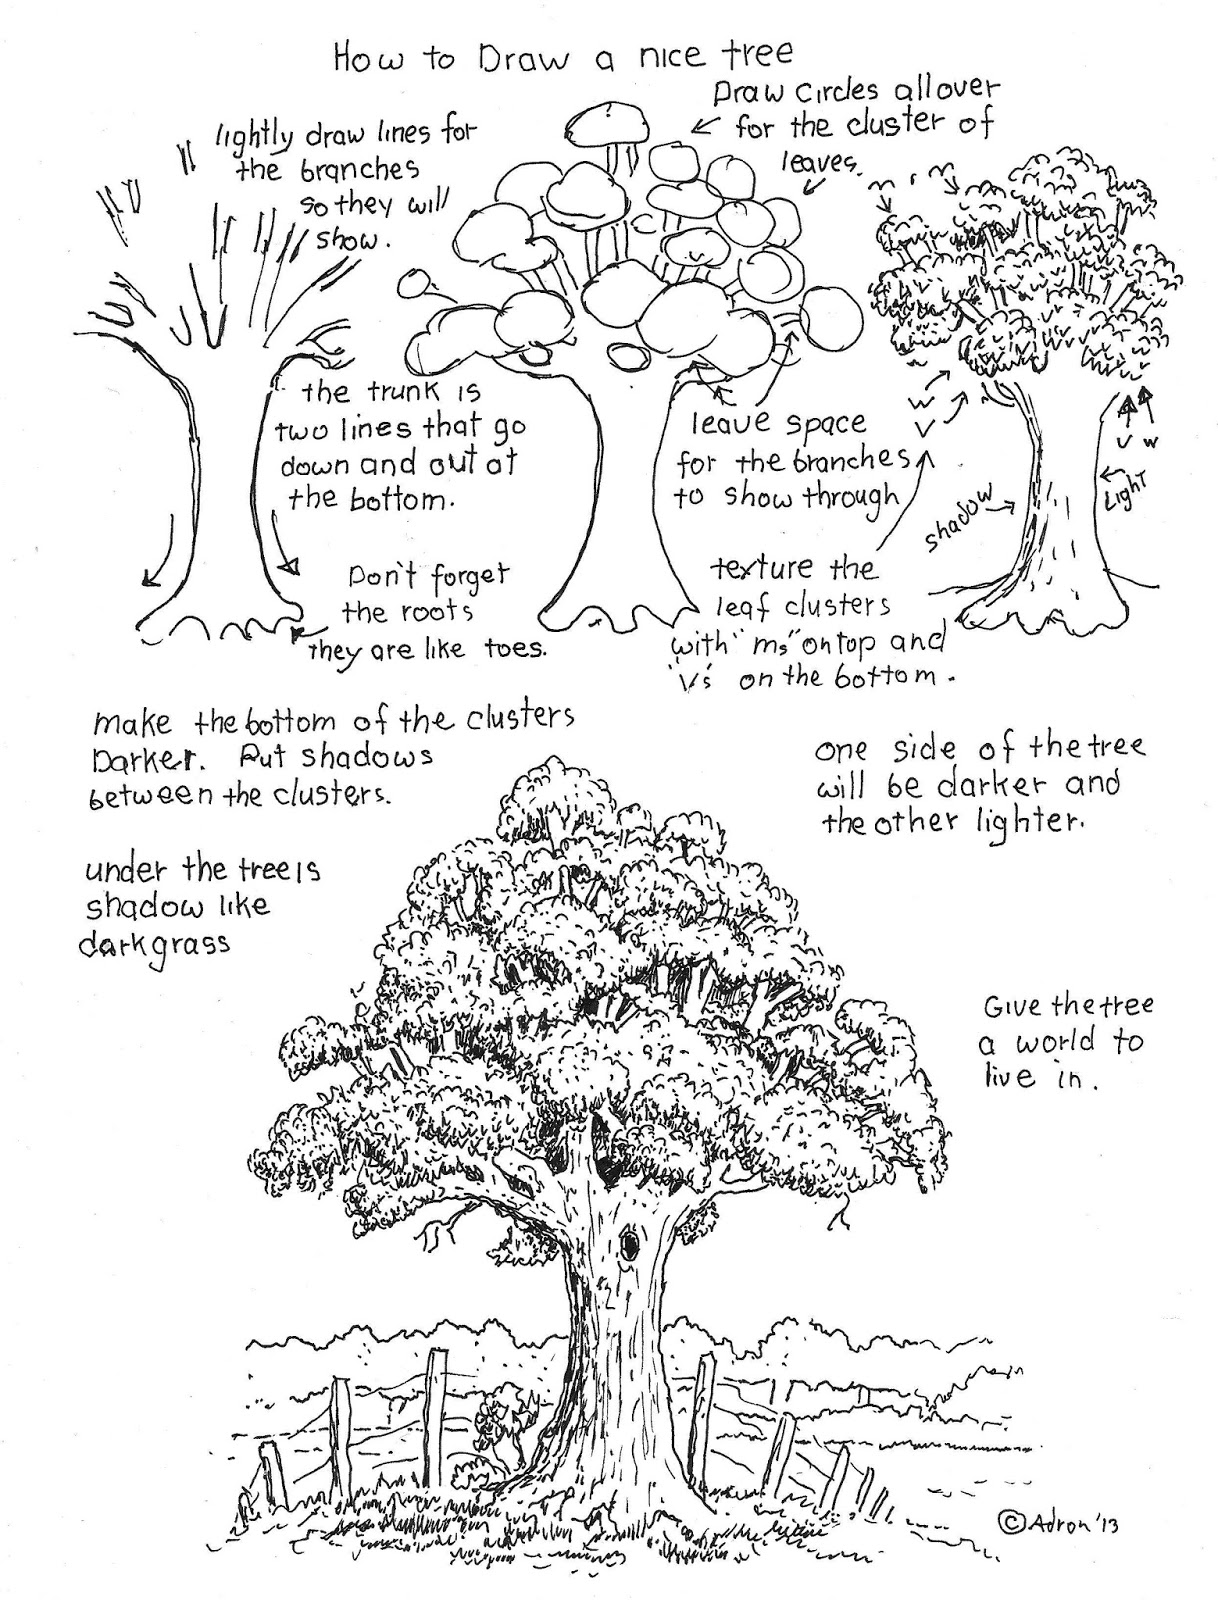 worksheet The Giving Tree Worksheets how to draw worksheets for the young artist a nice tree worksheet